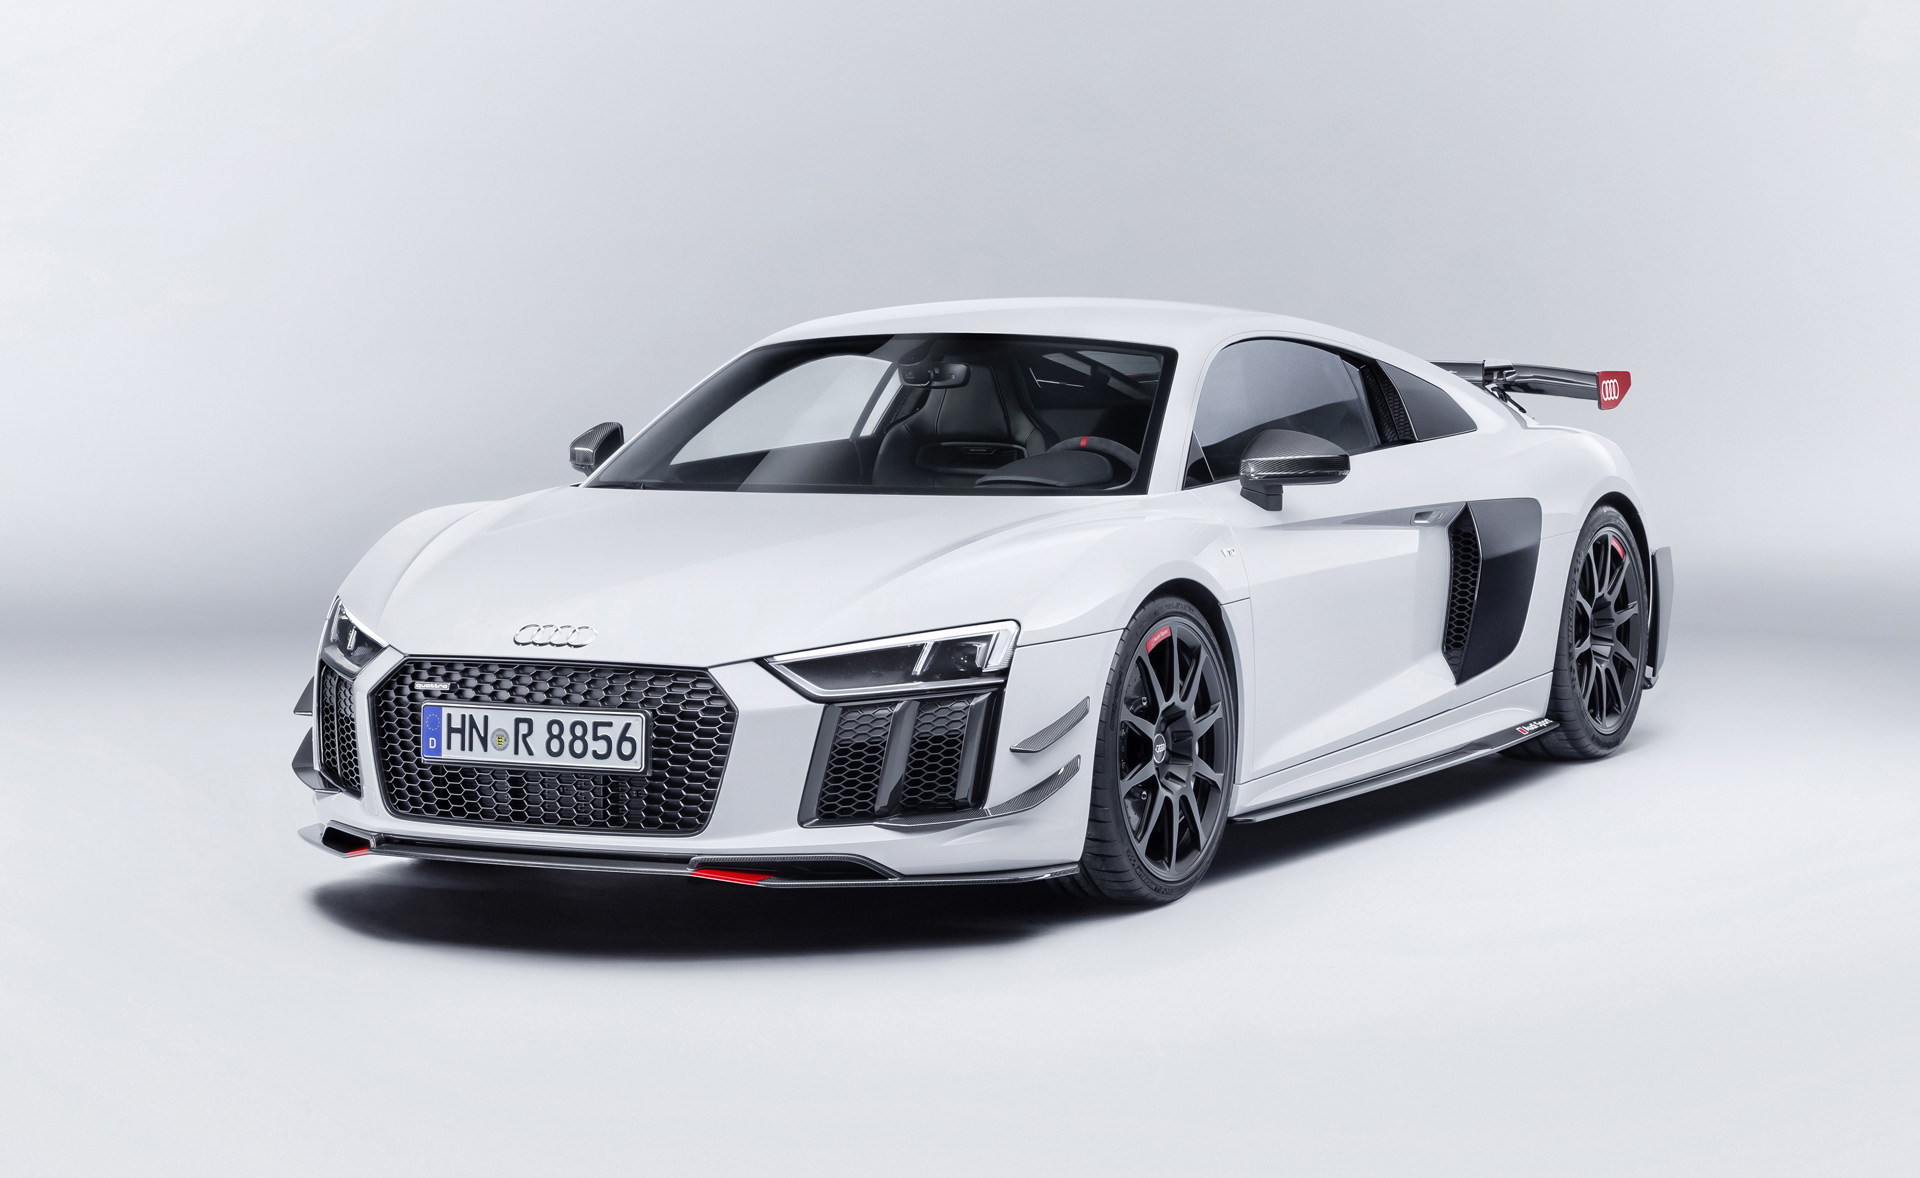 New And Used Audi R8: Prices, Photos, Reviews, Specs